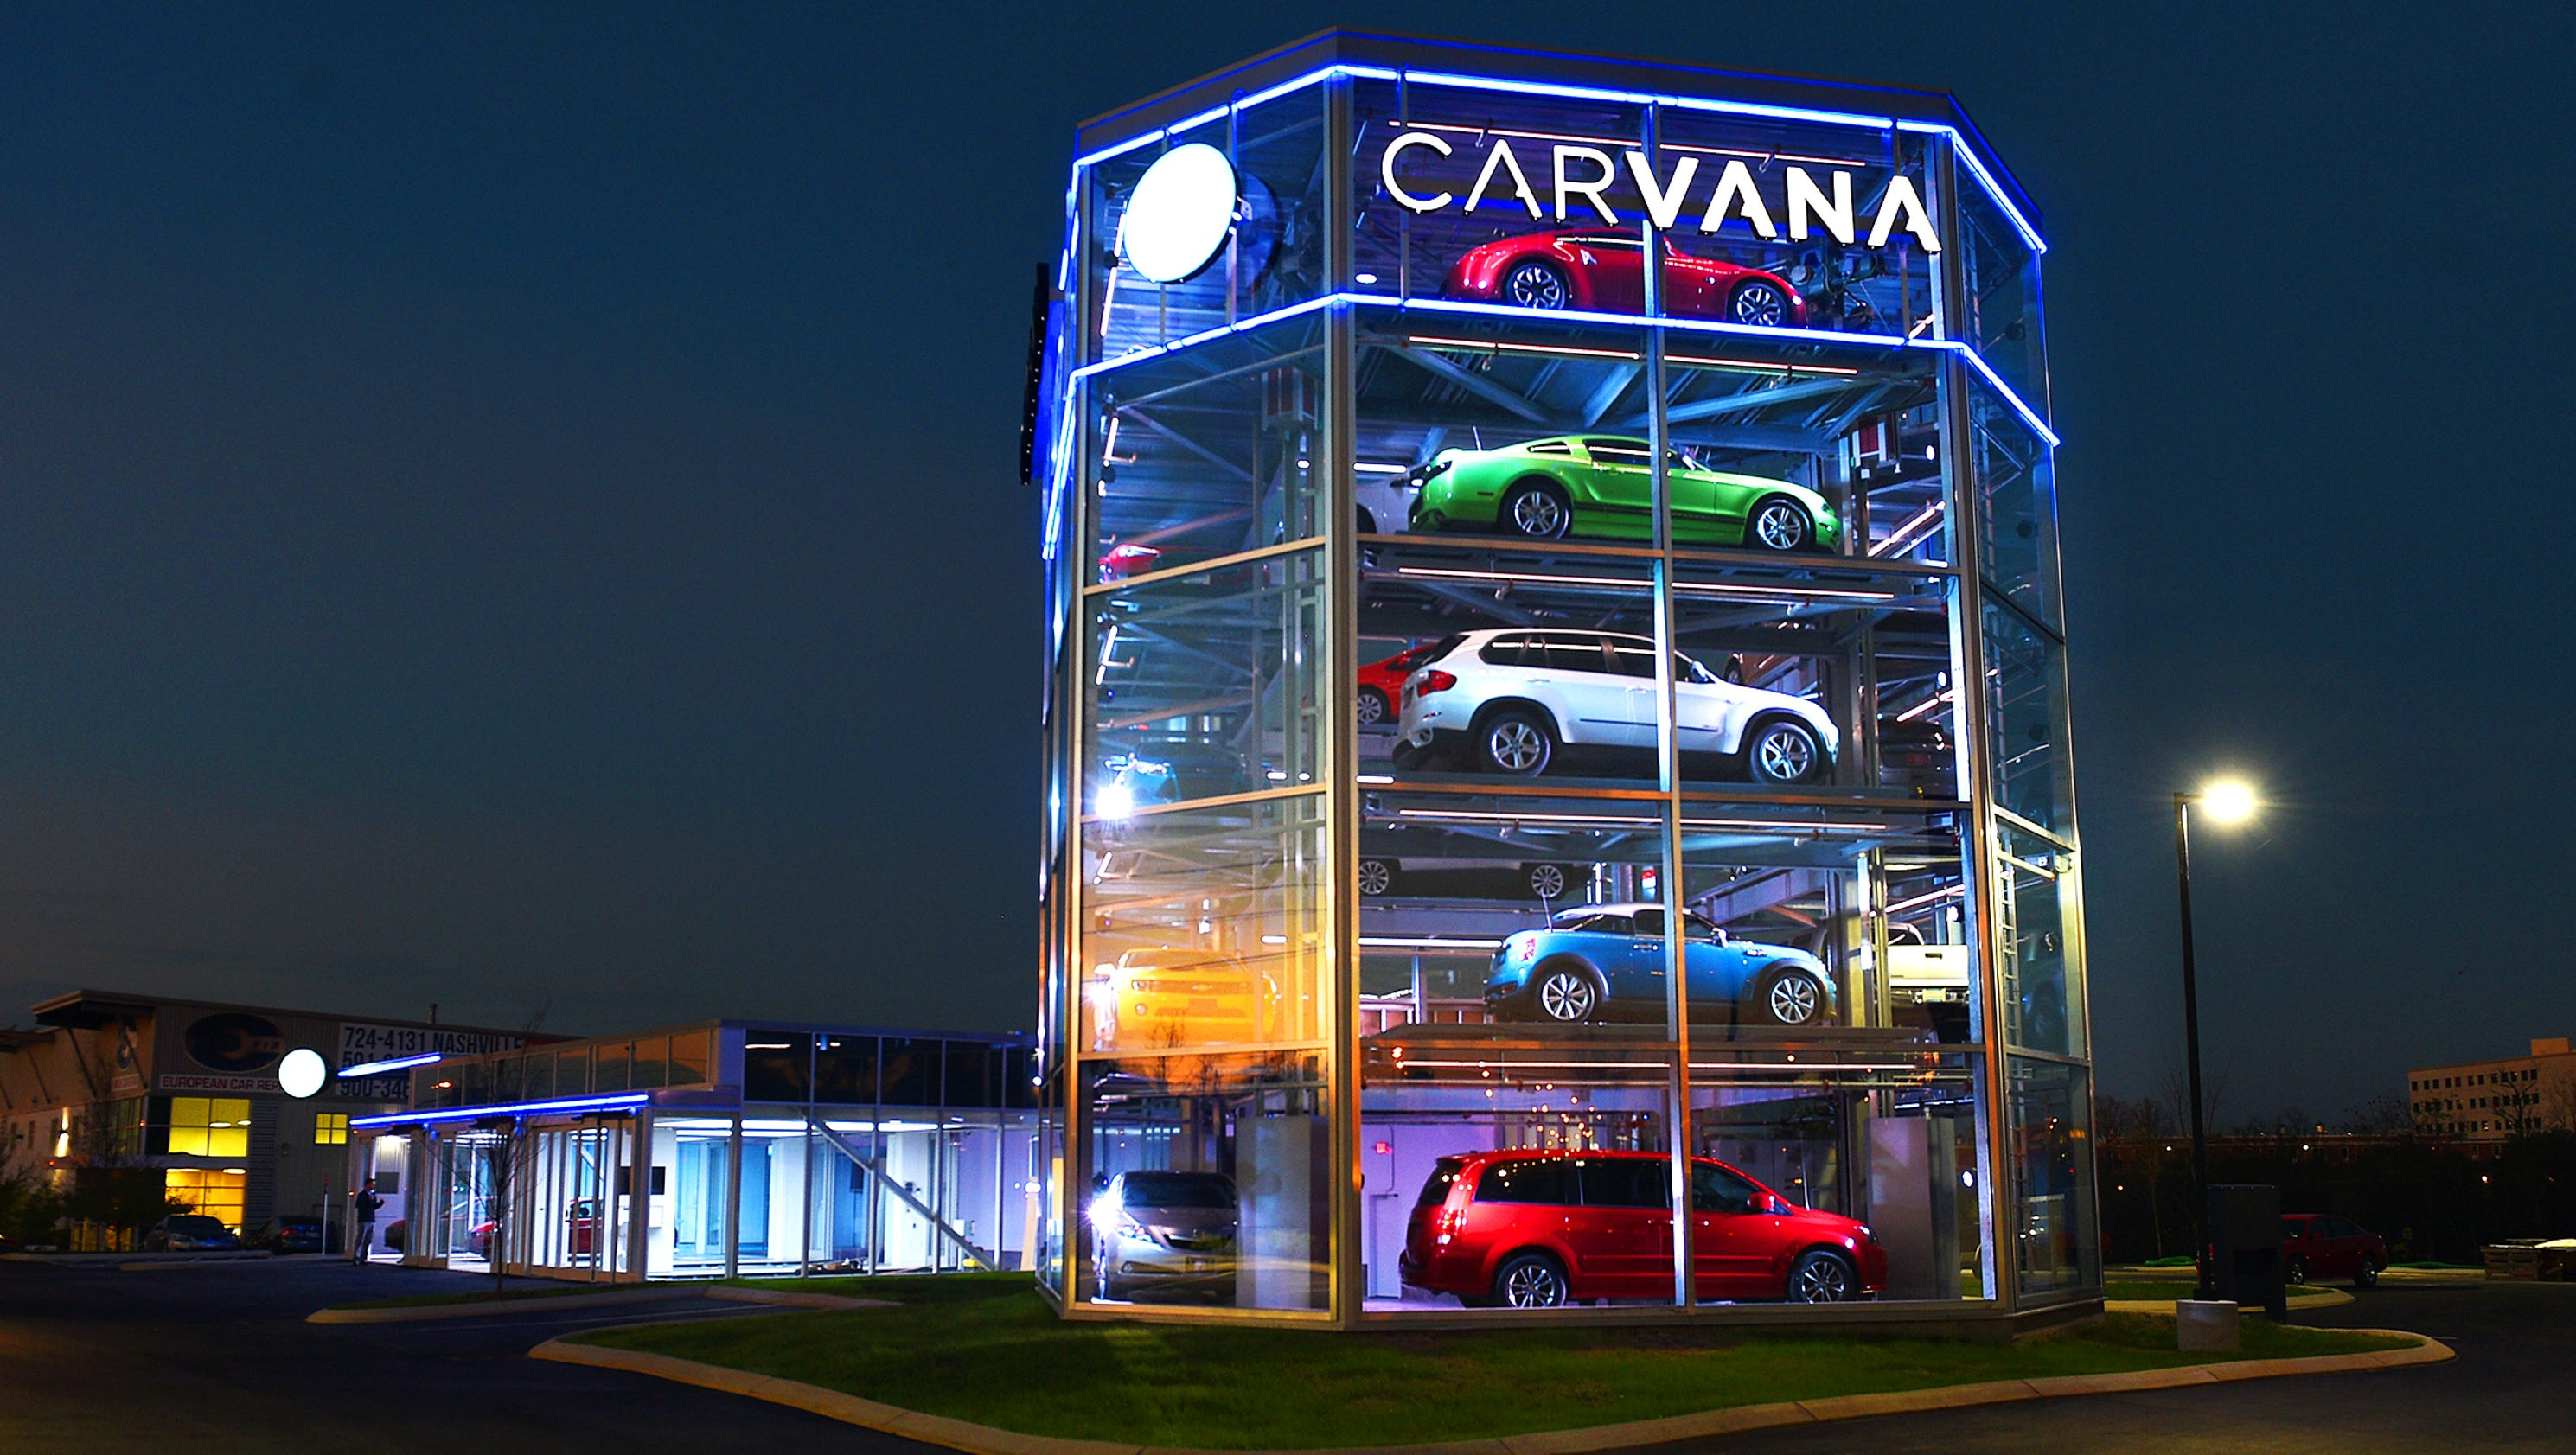 Carvana Vending Machine Spins Used Car Industry On New Path